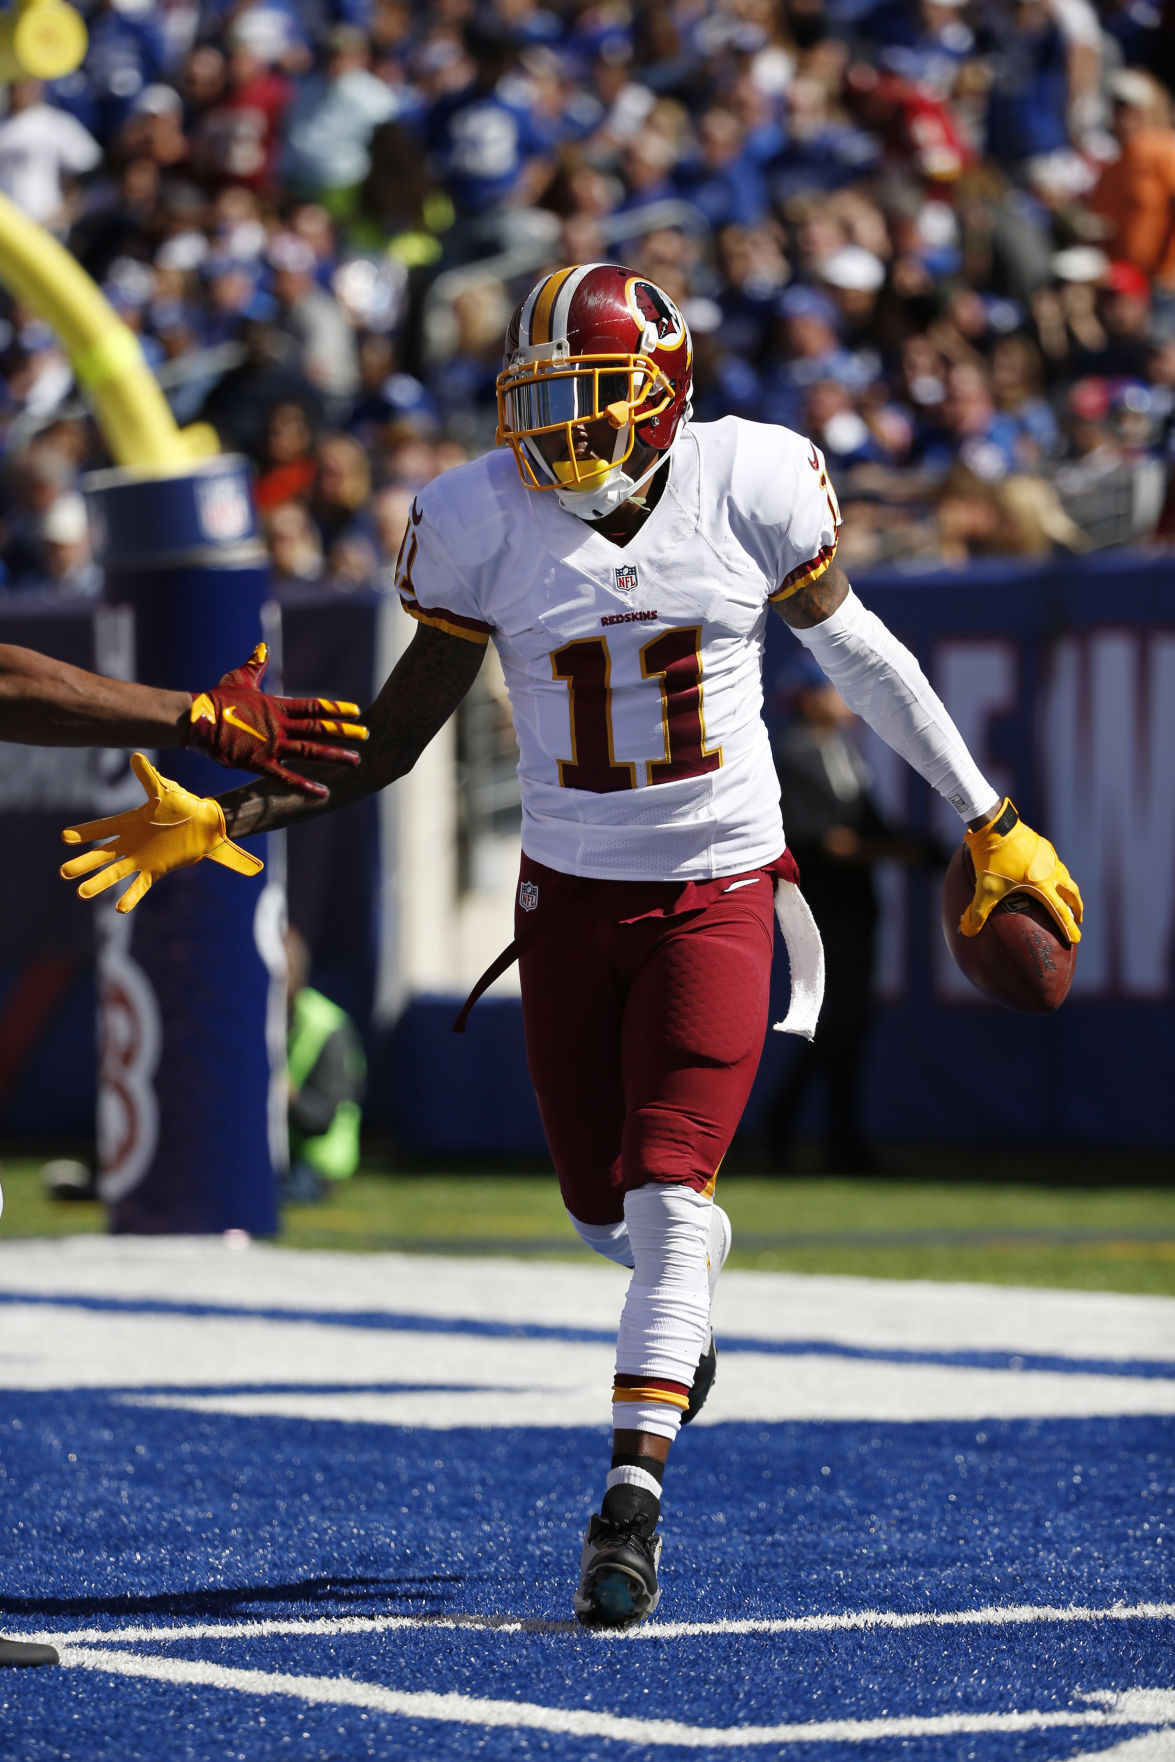 Eagles wary of DeSean Jackson in first NFC East tilt